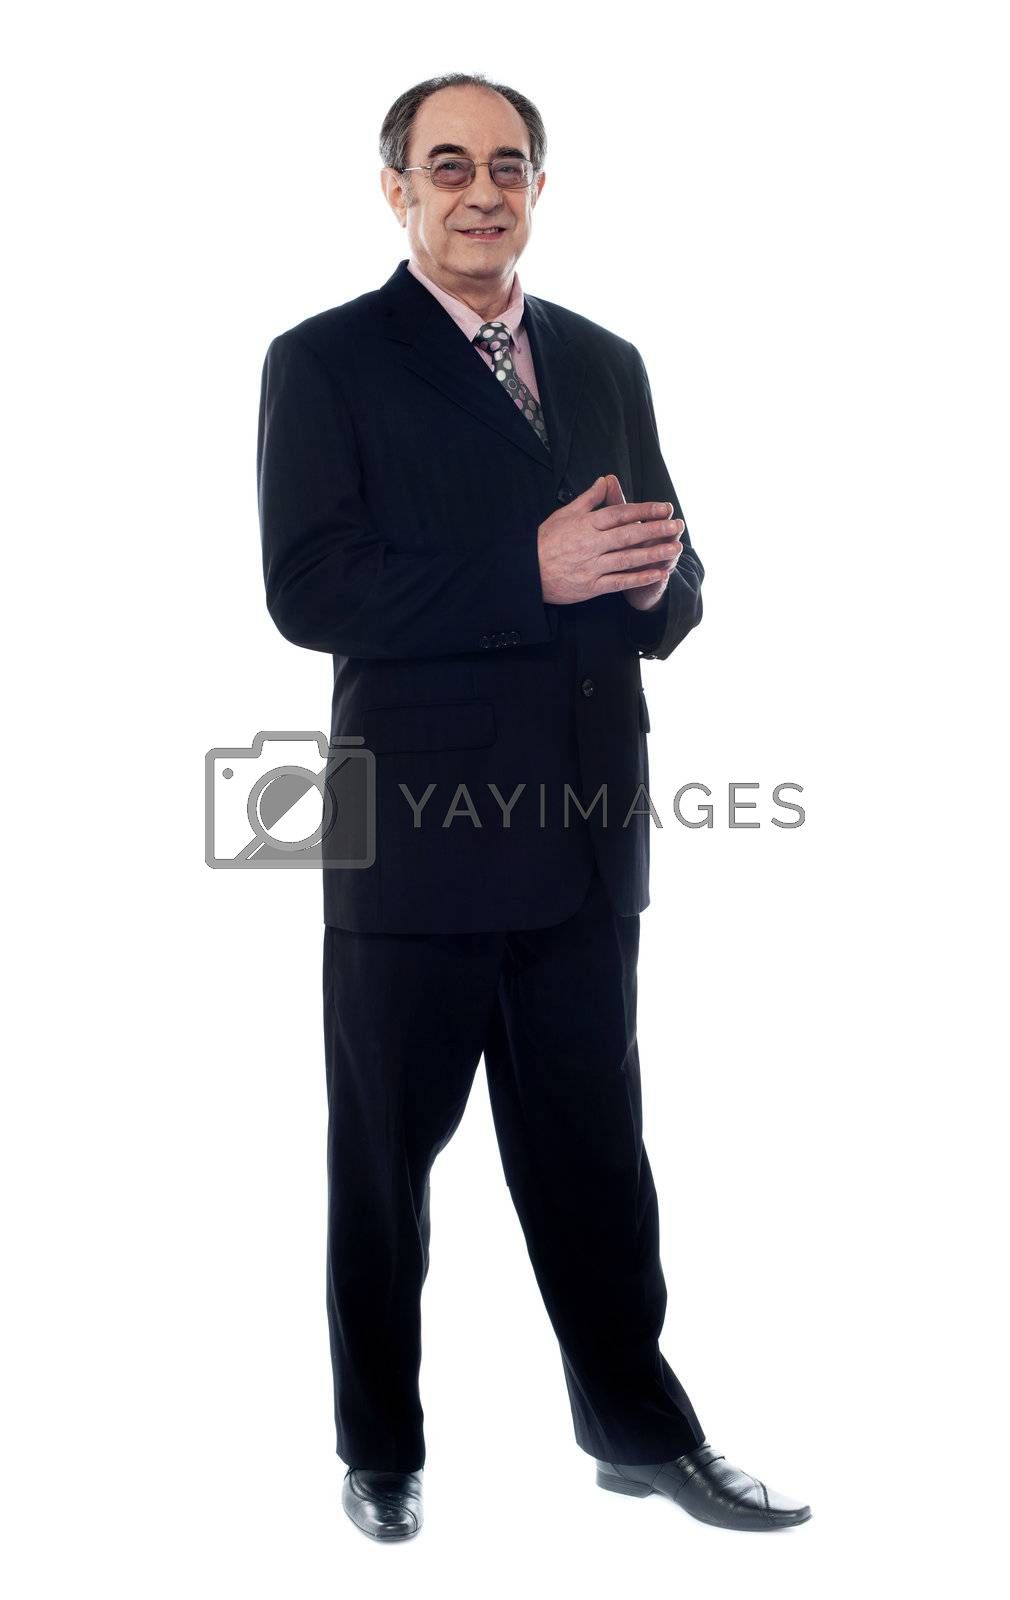 Smiling corporate person suited in black posing in front of camera